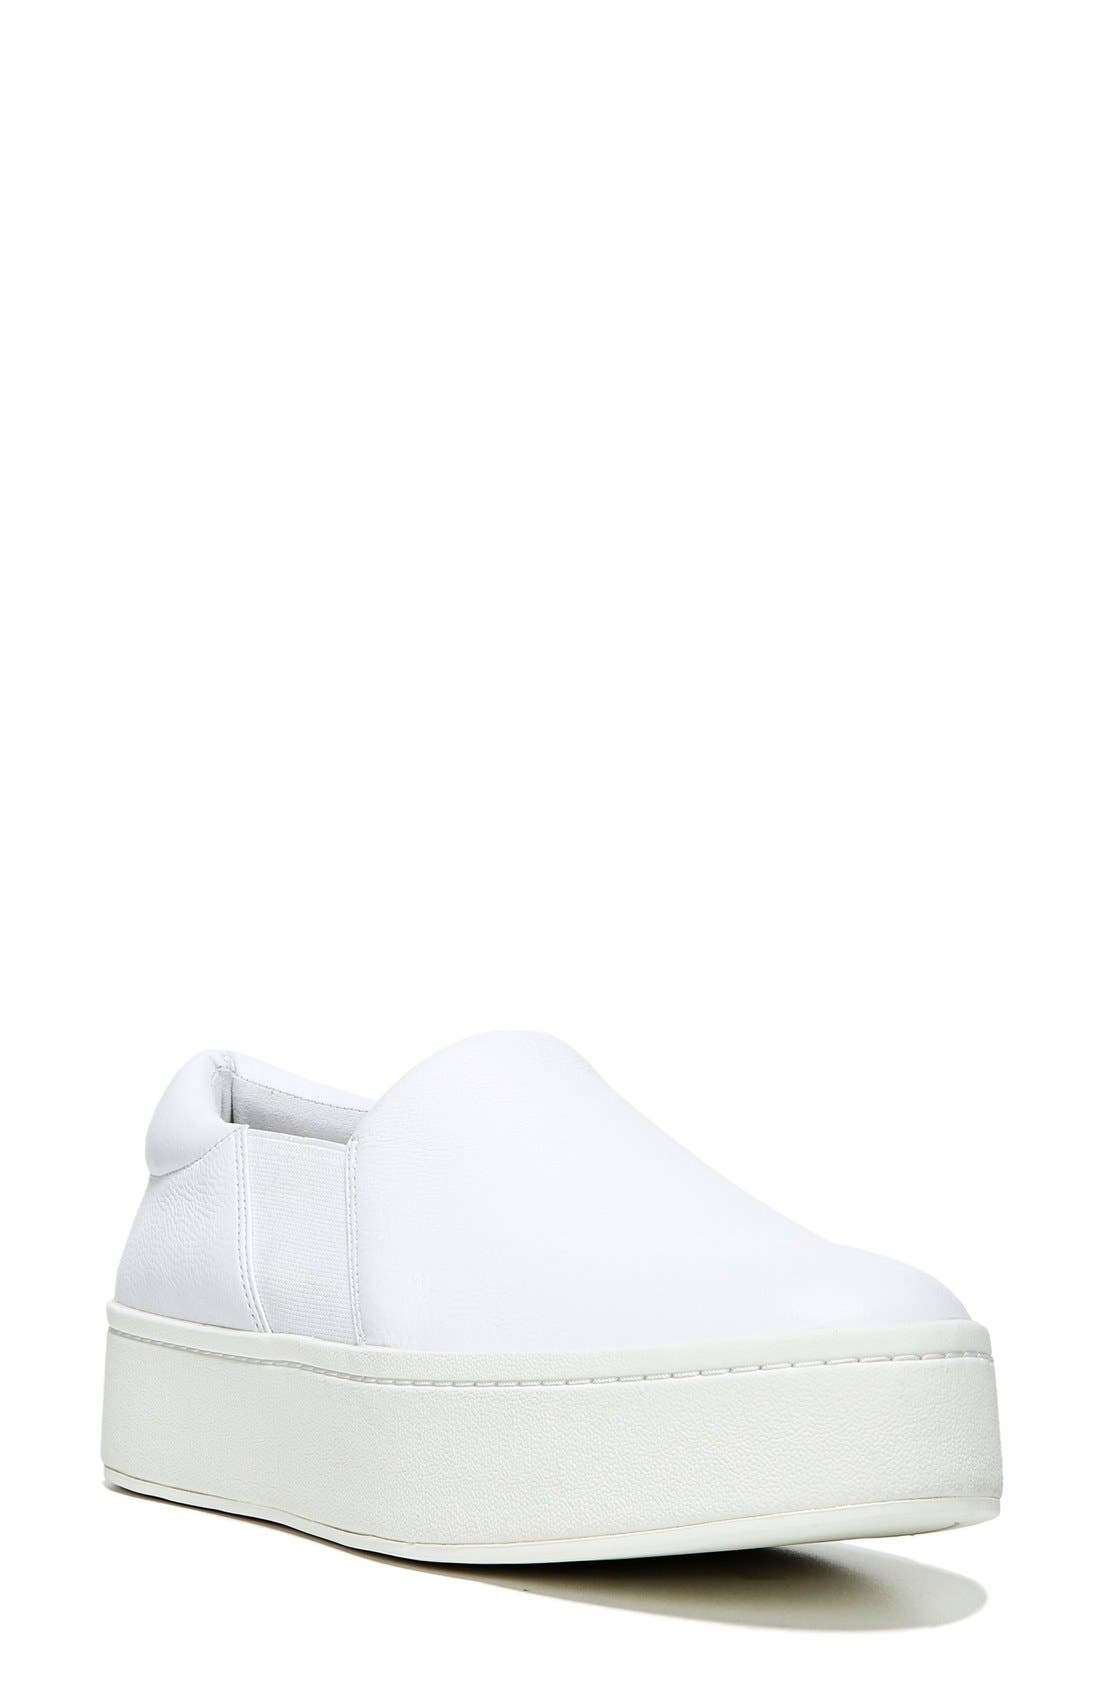 VINCE Warren Slip-On Sneaker, Main, color, PLASTER LEATHER